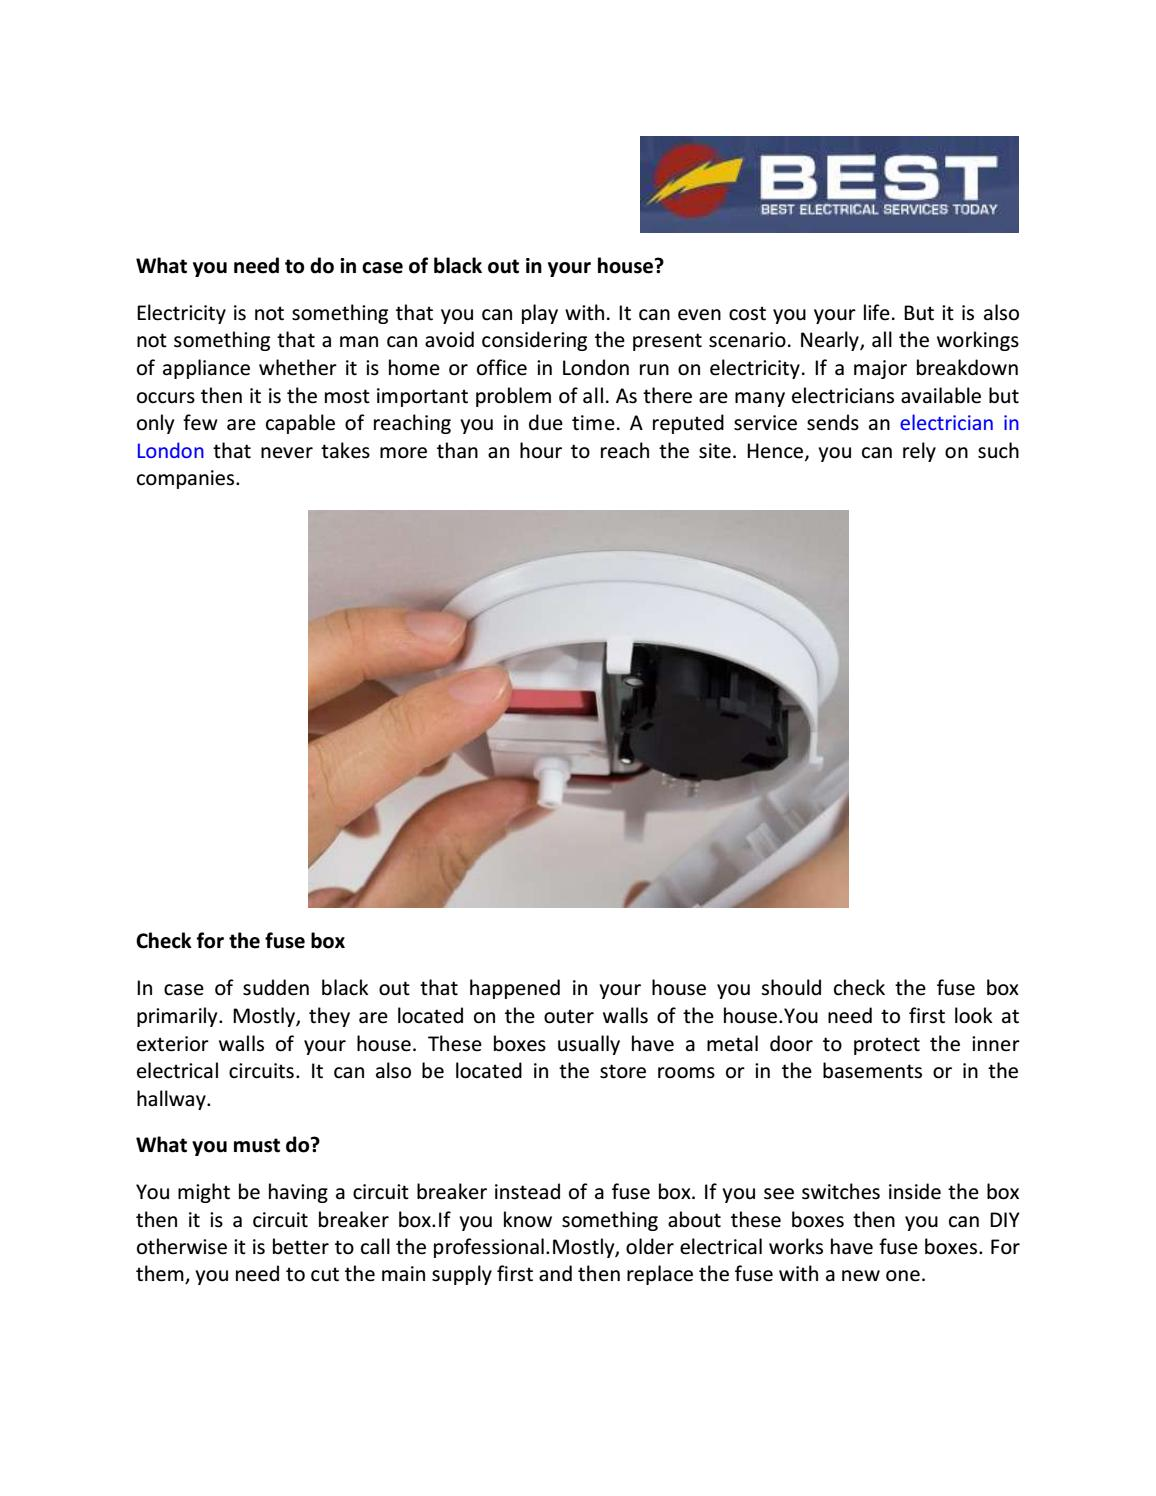 what you need to do in case of black out in your house by bantina what you need to do in case of black out in your house by bantina mangua issuu